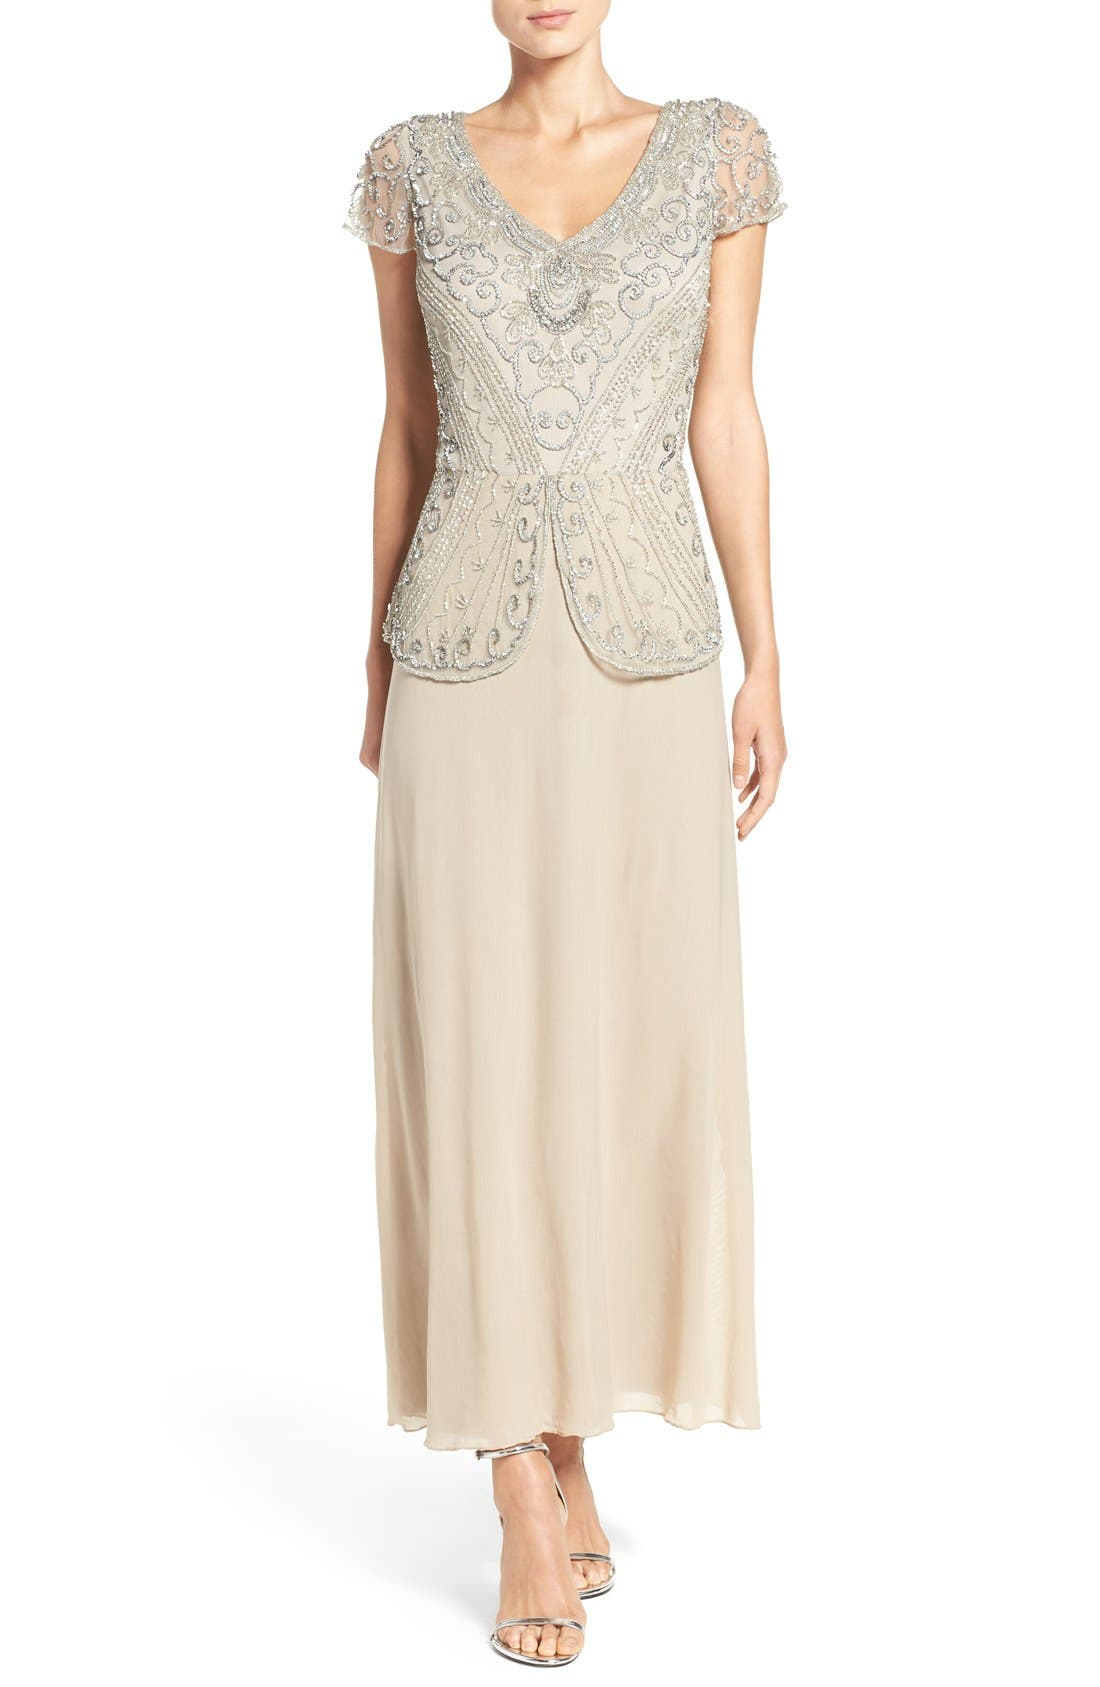 Alternate Image 1 Selected - Pisarro Nights Embellished Mesh Gown (Regular & Petite)